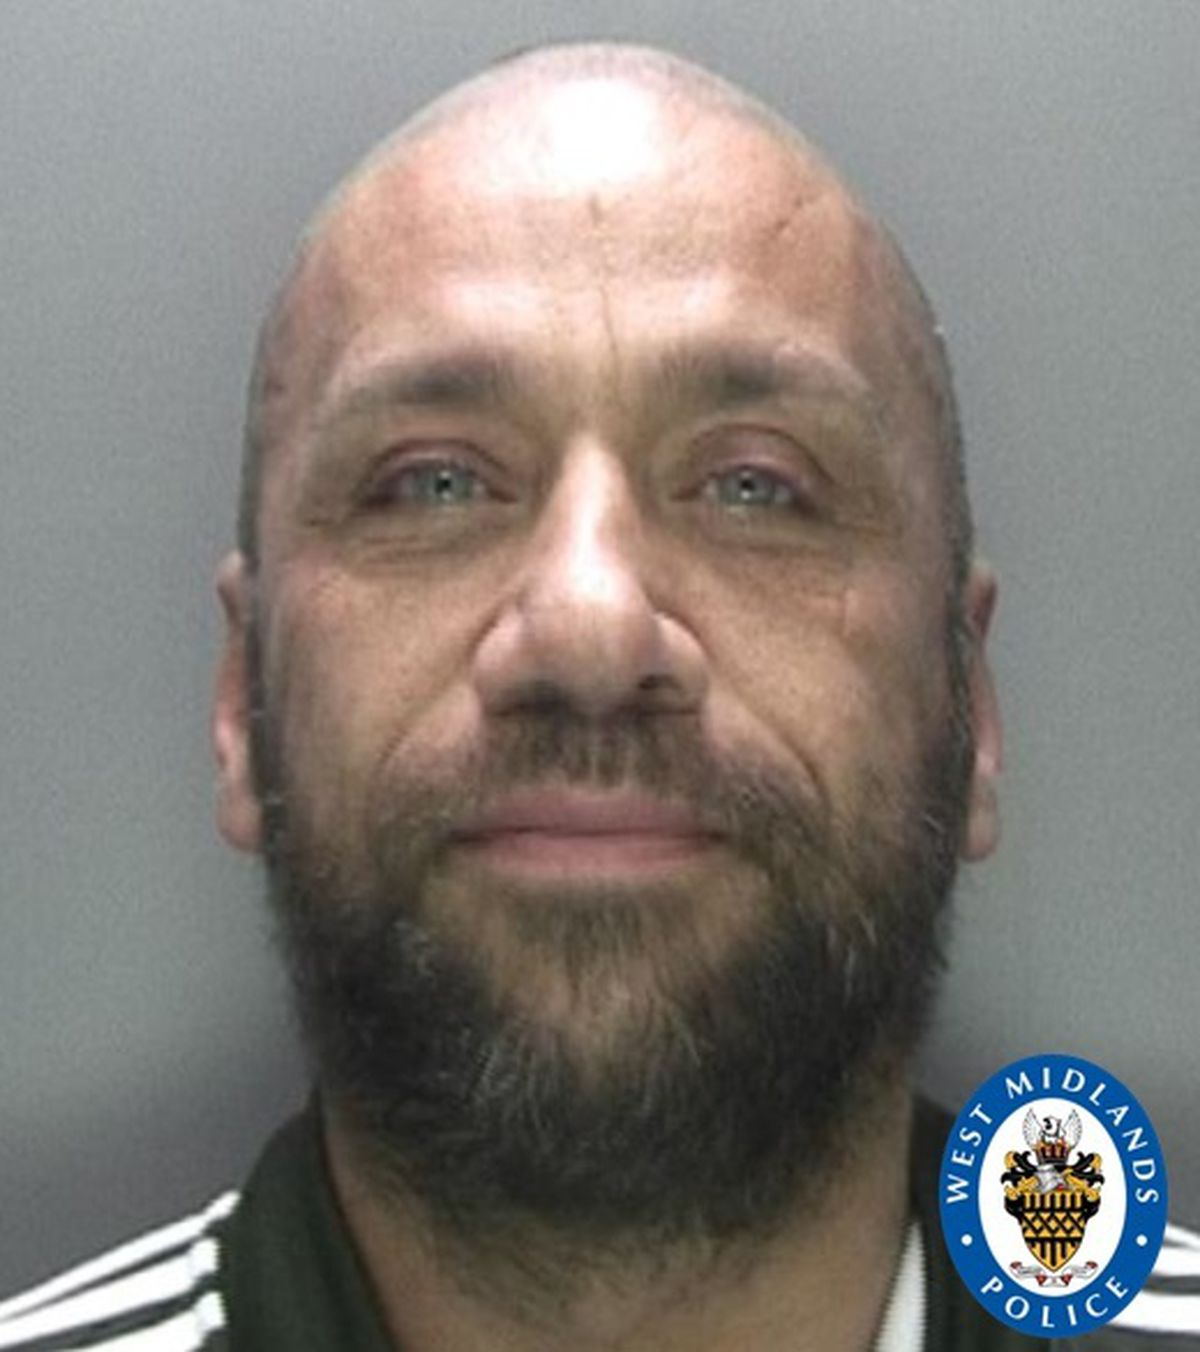 Dean Horton, 46, was jailed for nine years